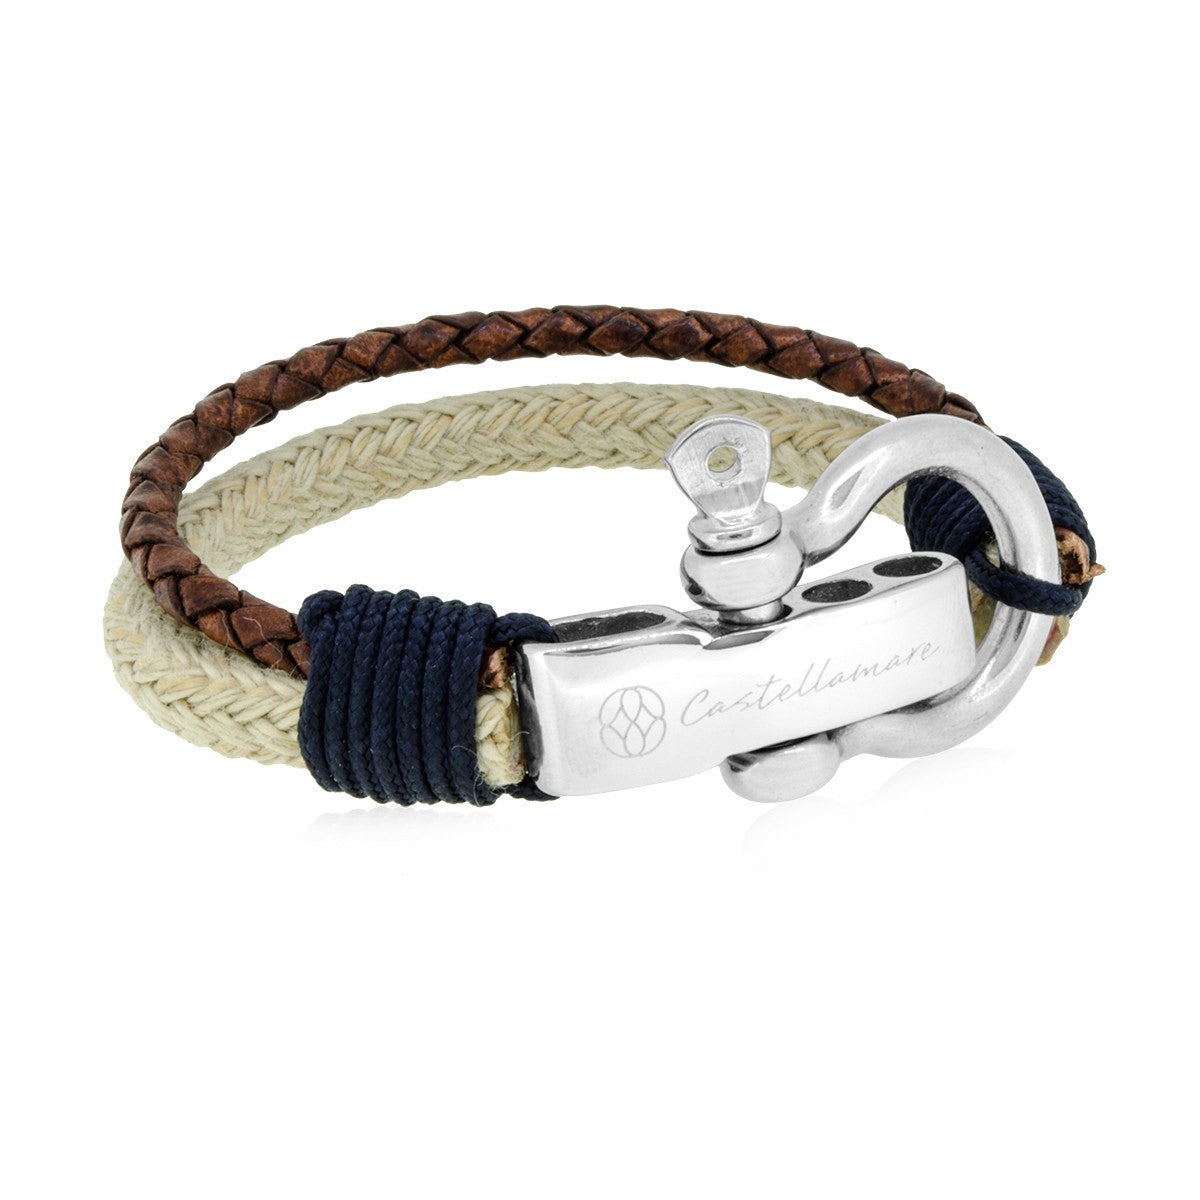 Bracelet - Rimini Beige Brown Braided Leather Solid Navy Stainless Steel